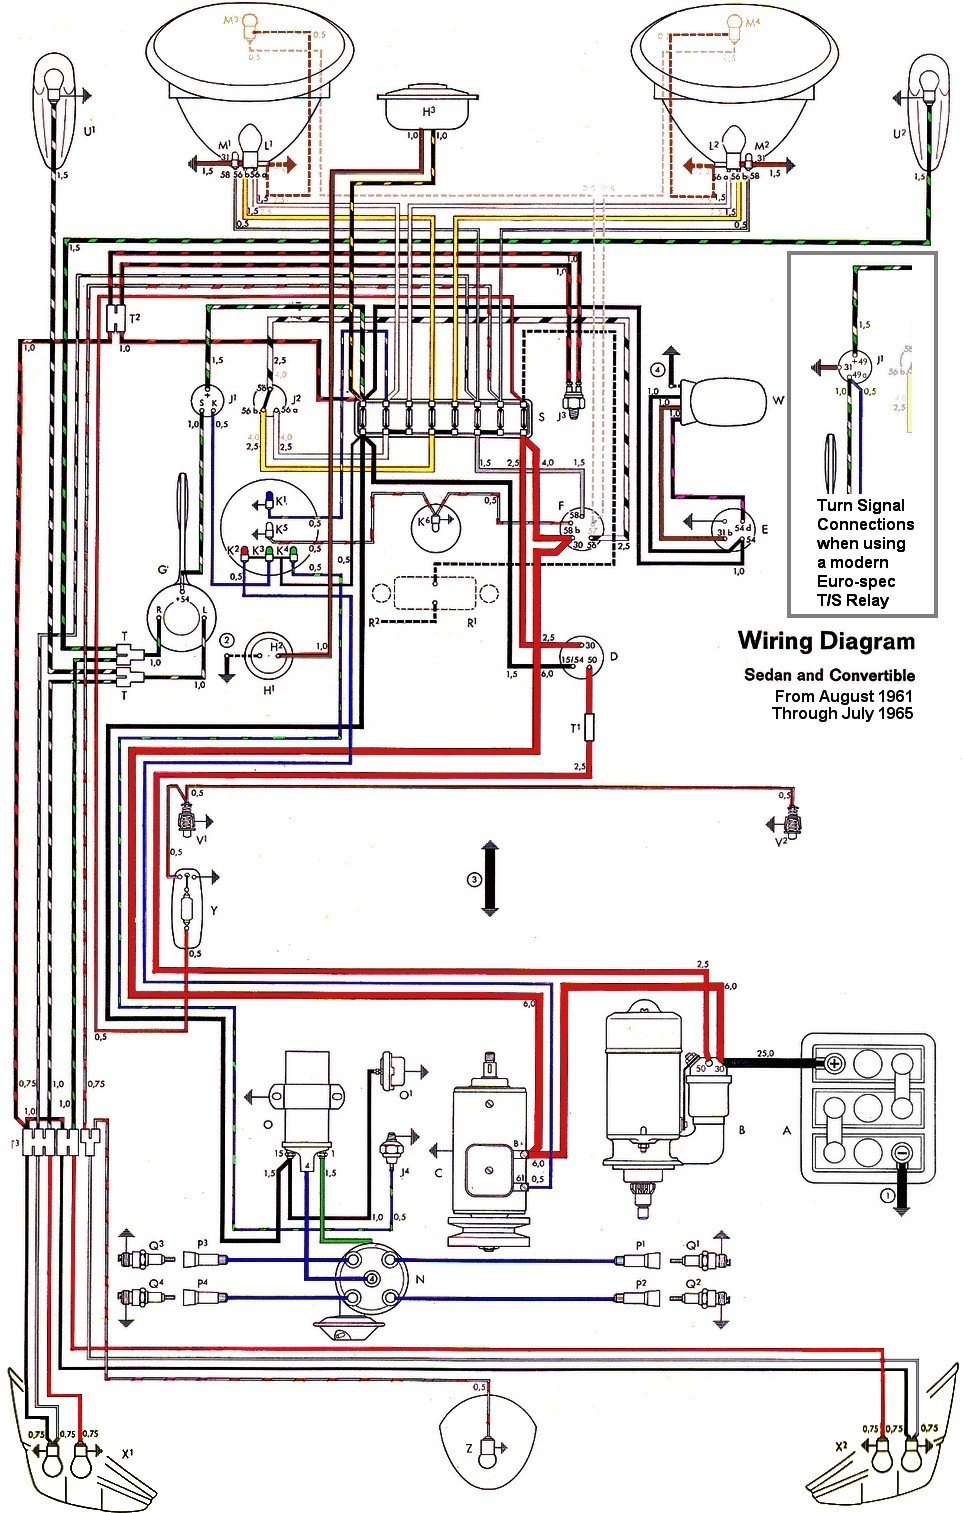 bug_62 65withinset wiring diagram vw beetle sedan and convertible 1961 1965 vw 1971 vw bus wiring diagram at crackthecode.co